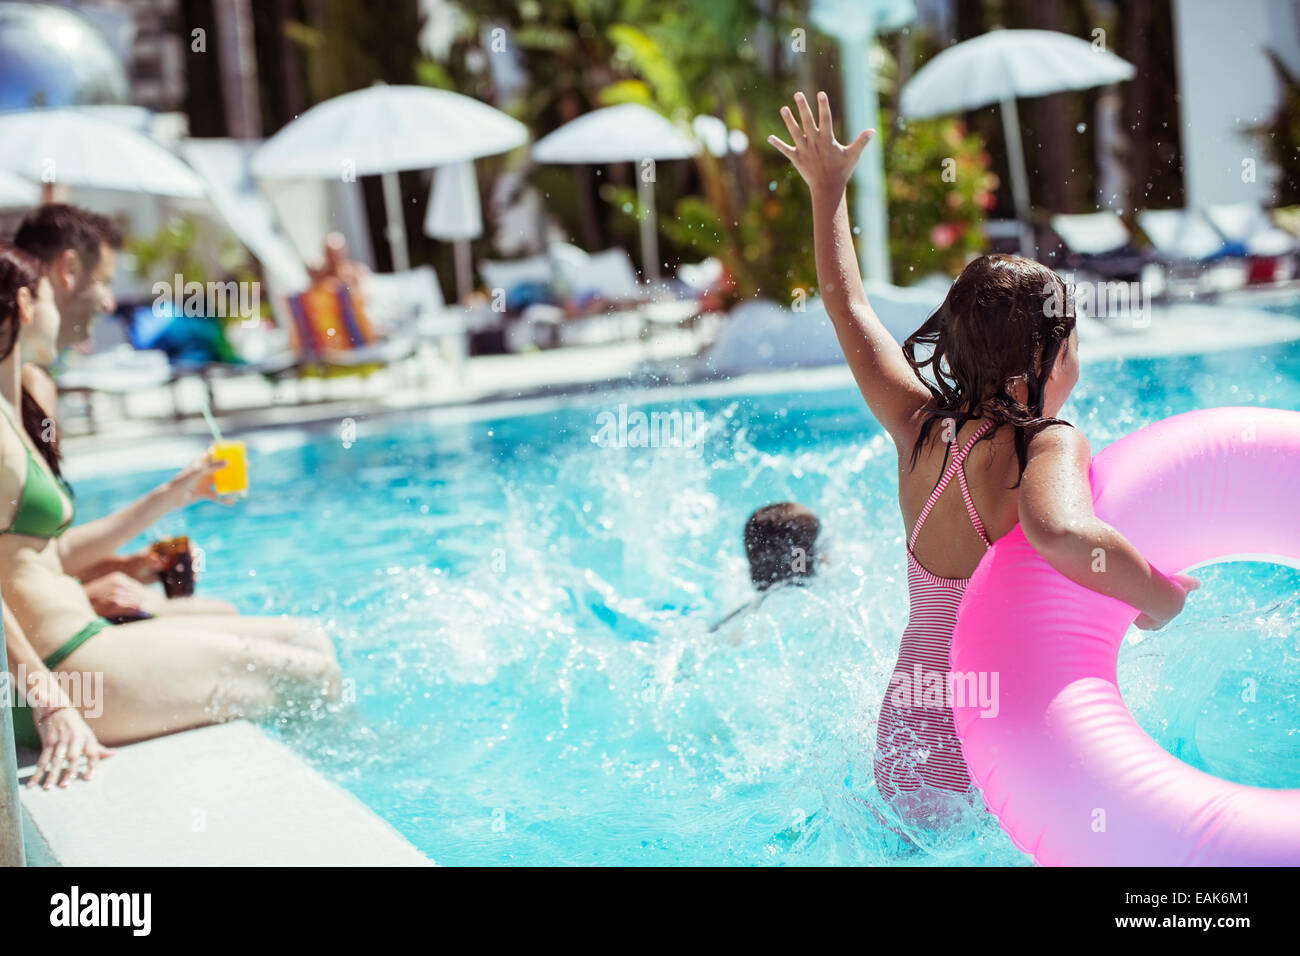 Girl with pink inflatable ring jumping into swimming pool, family in background - Stock Image